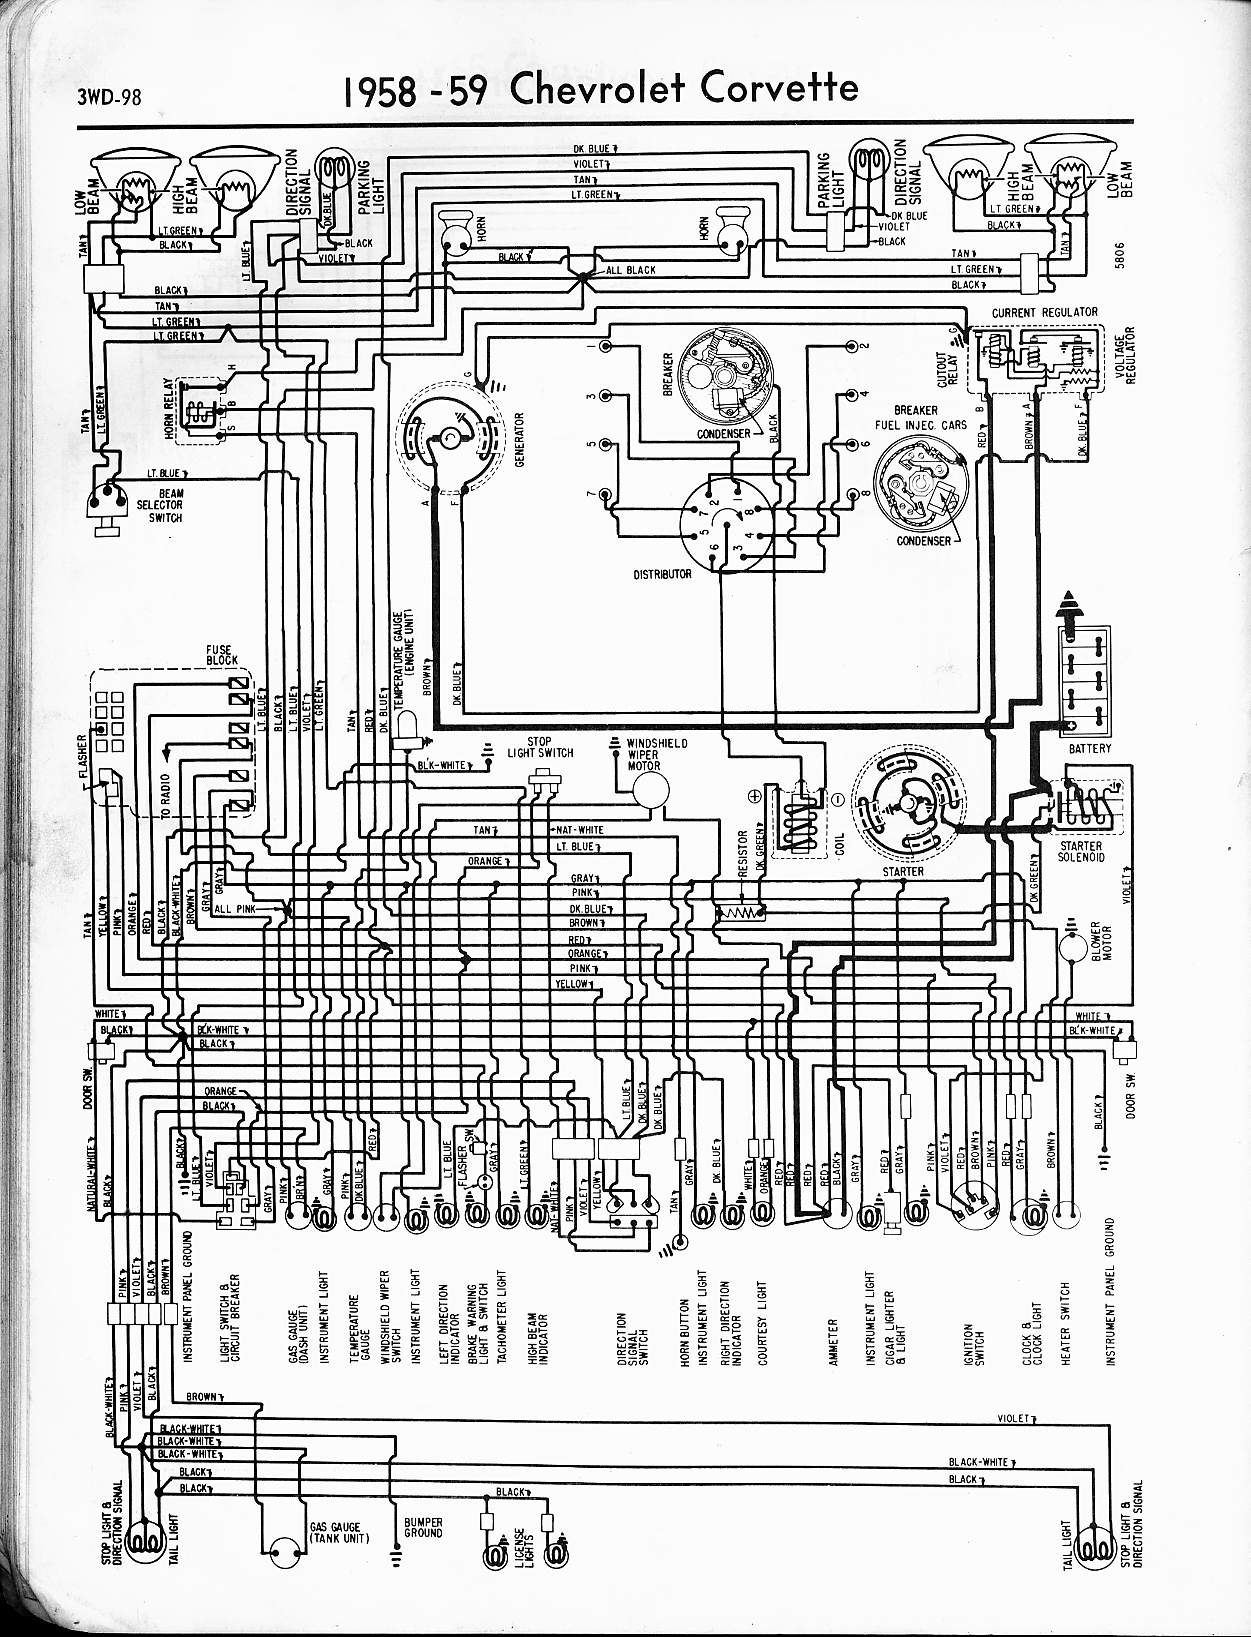 57 65 Chevy Wiring Diagrams 98 Neon Engine Harness Diagram 1958 Corvette